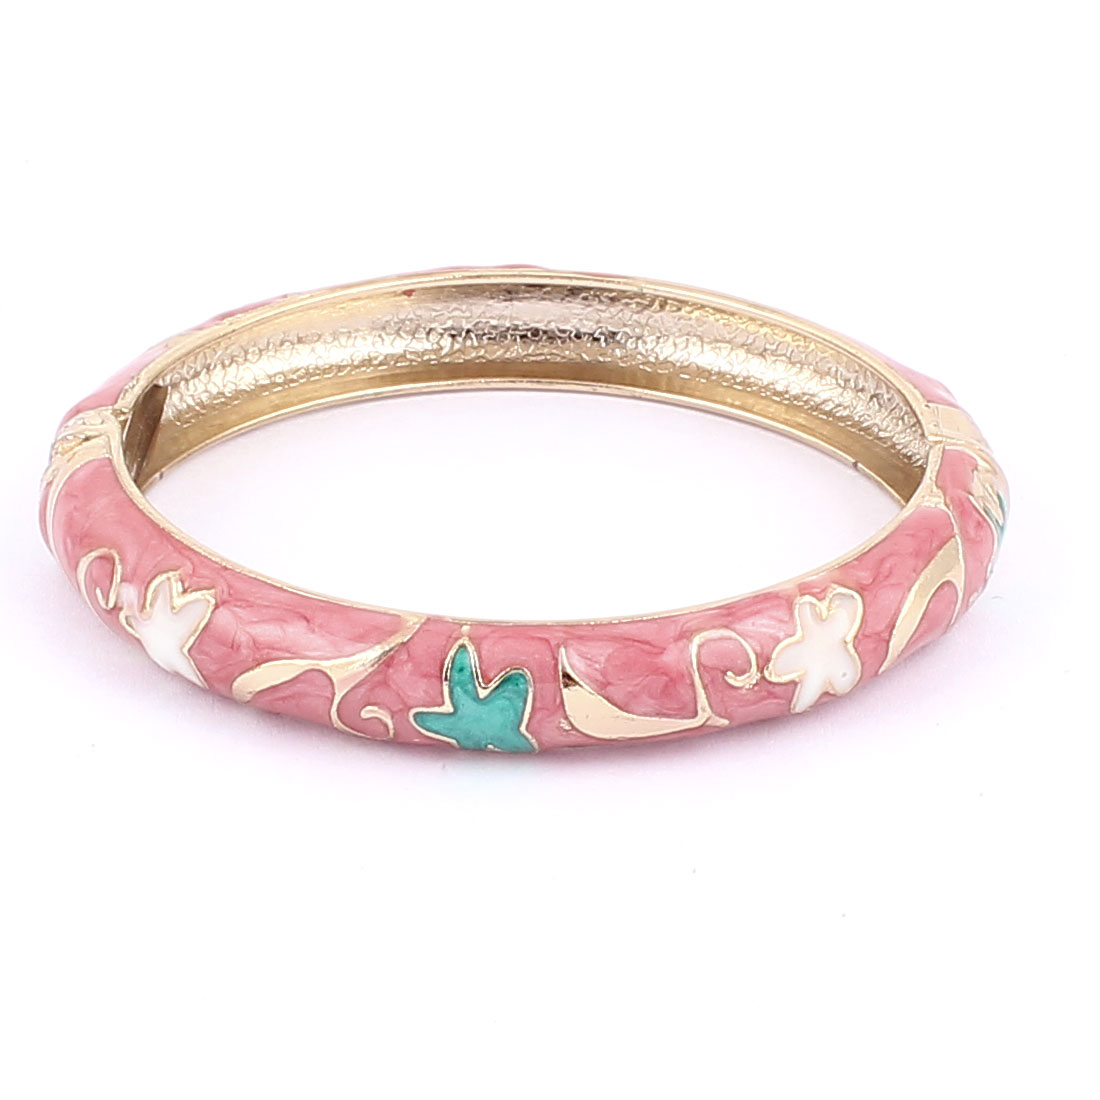 Woman Lady Spring Hinged Round Cuff Flower Pattern Enamel Bracelet Bangle Pink